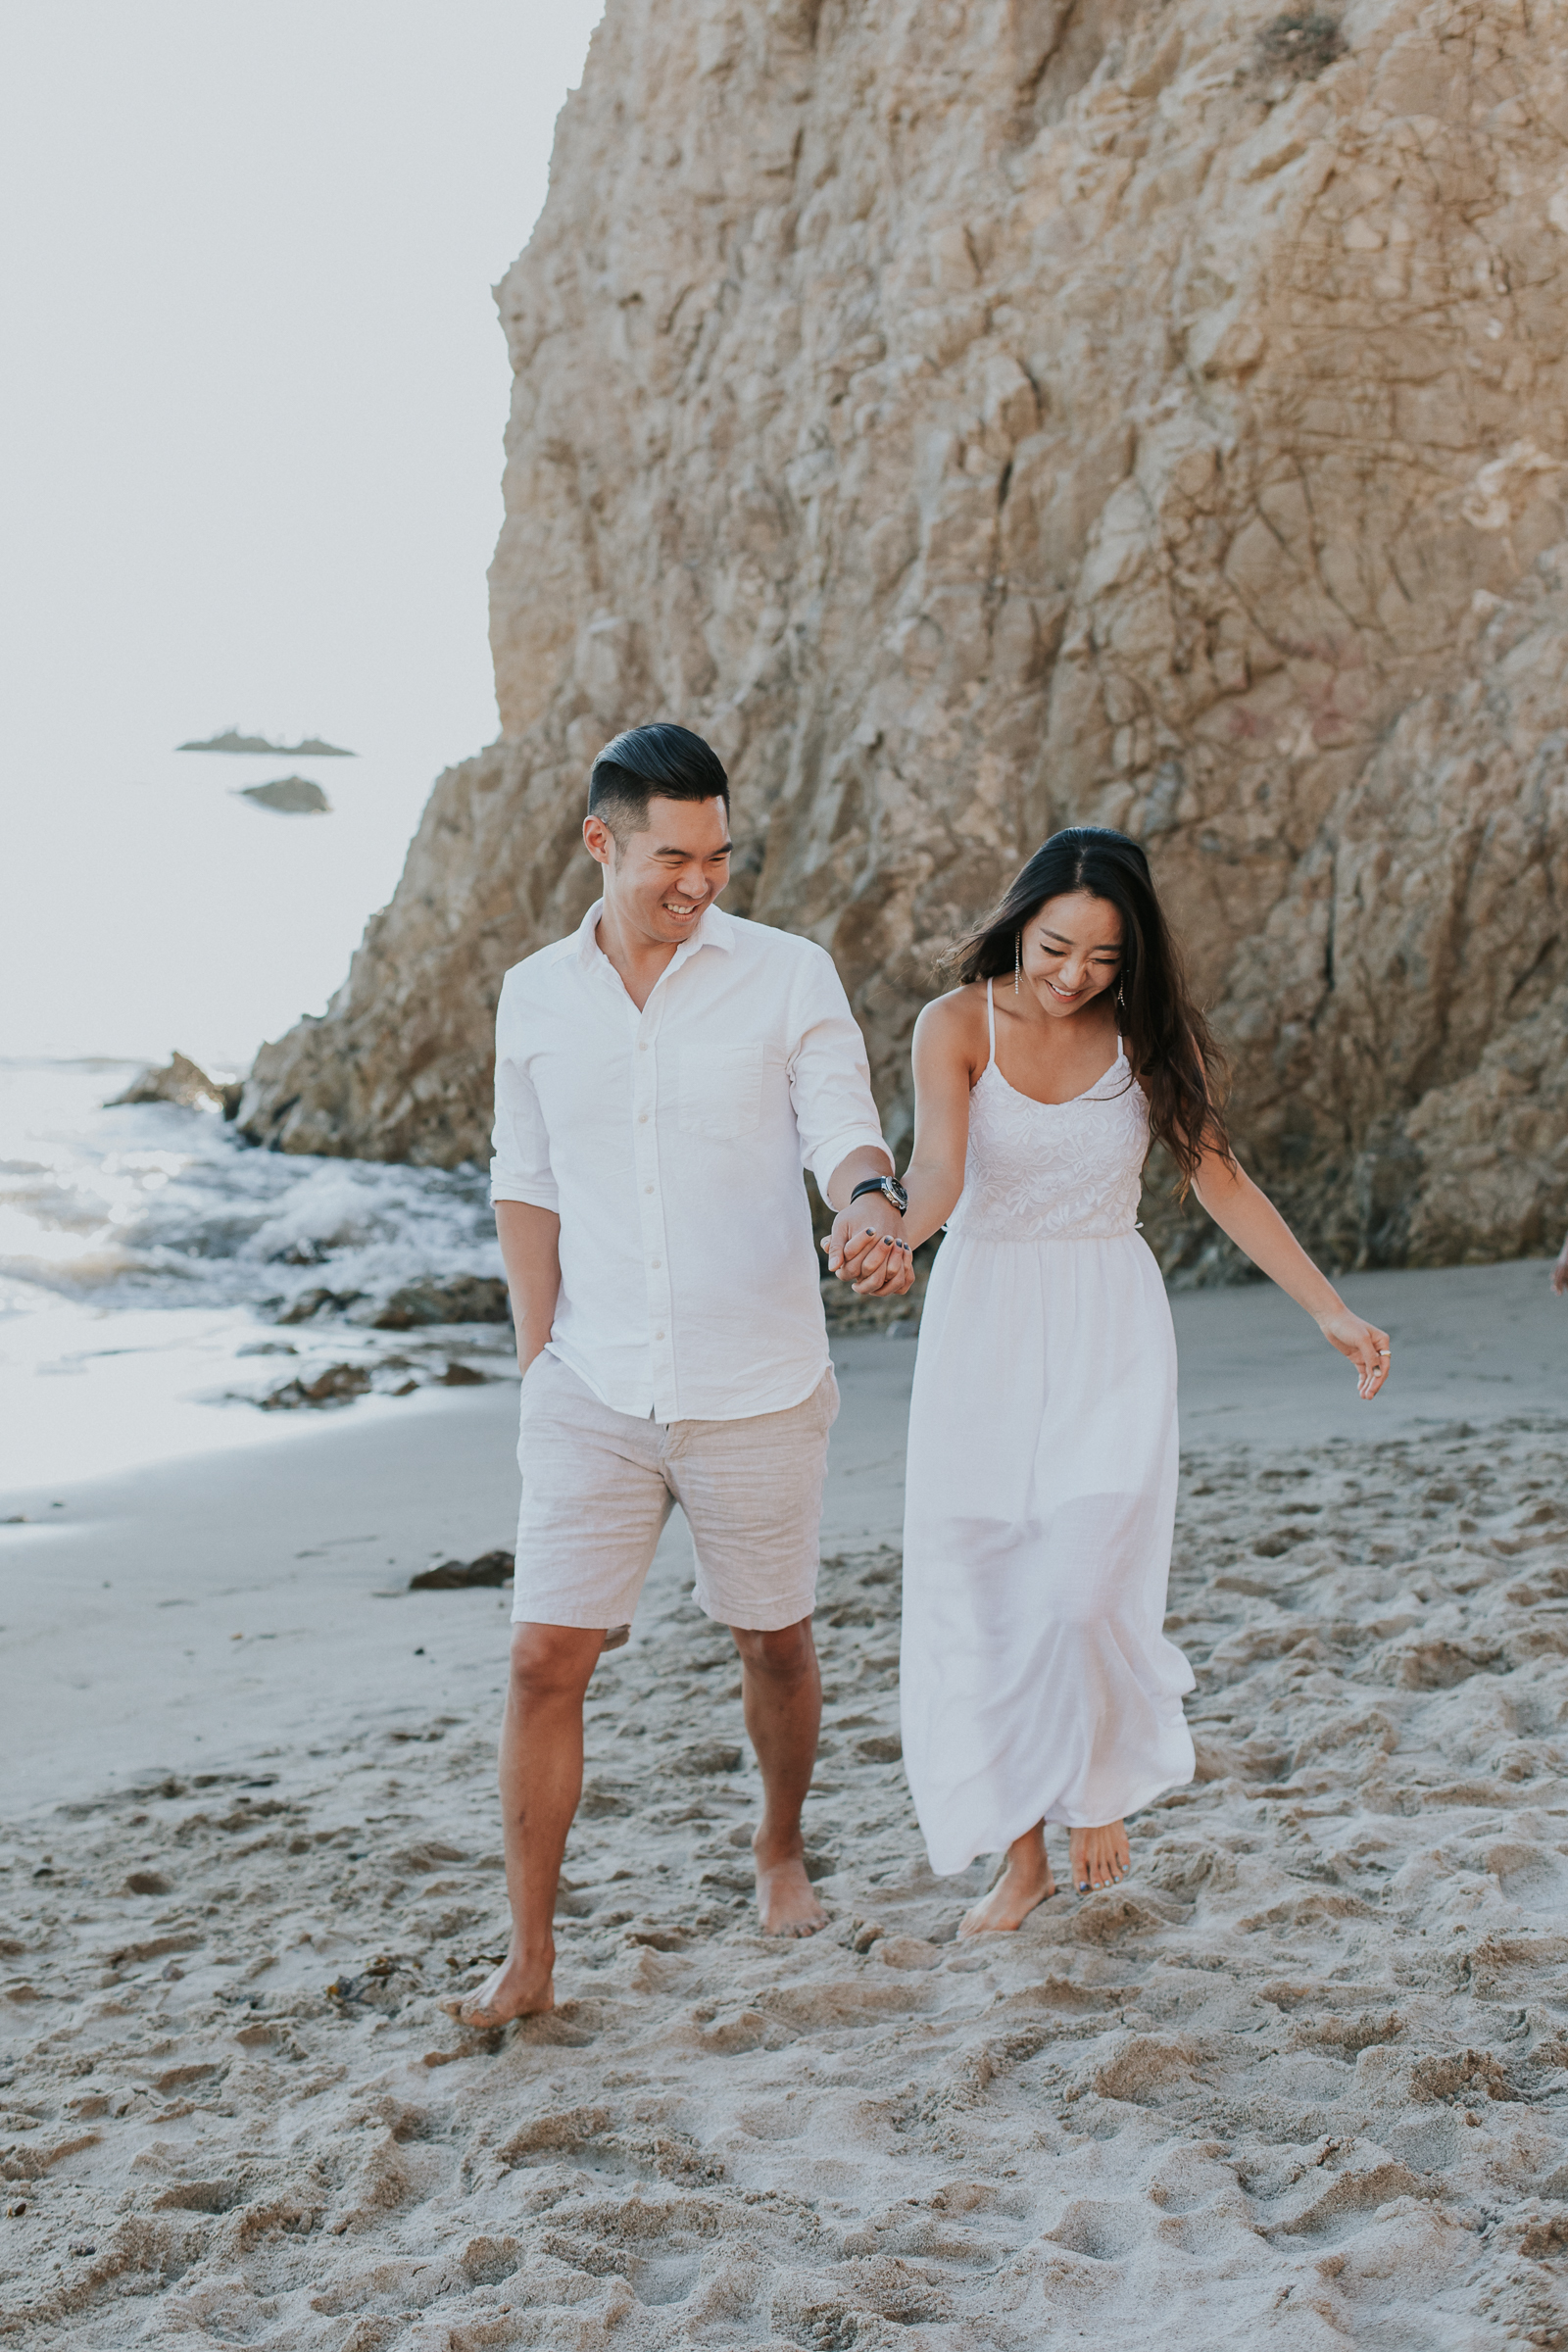 Malibu-El-Matador-State-Beach-Sunset-Engagement-Photos-Los-Angeles-Documentary-Wedding-Photographer-15.jpg